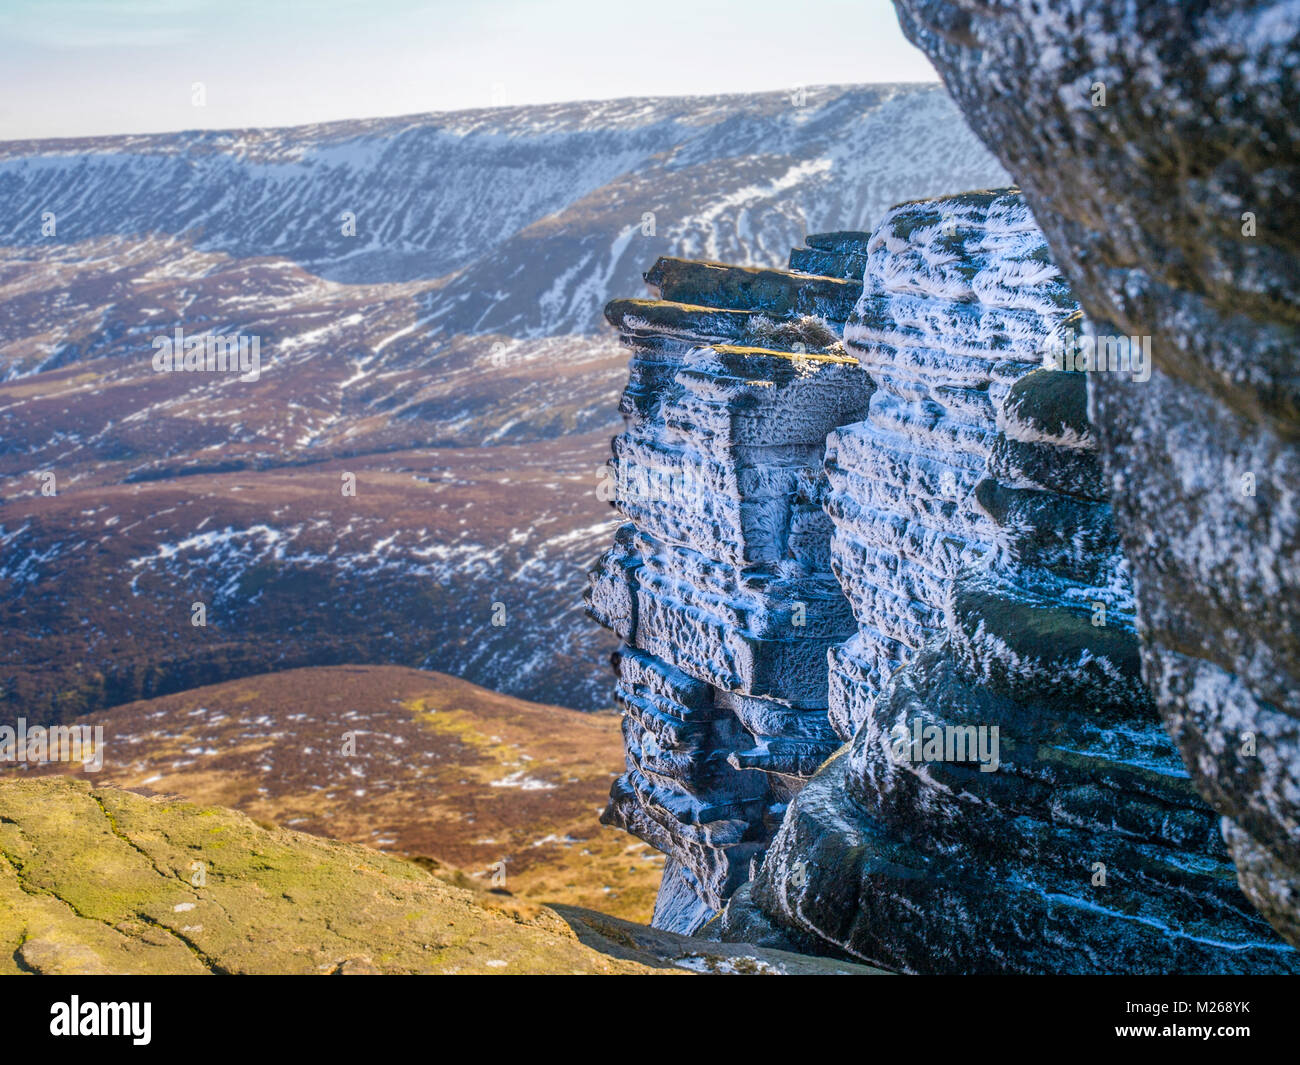 The crags on the Northern Edges of Kinder Scout, Peak District National Park with ice and snow - Stock Image